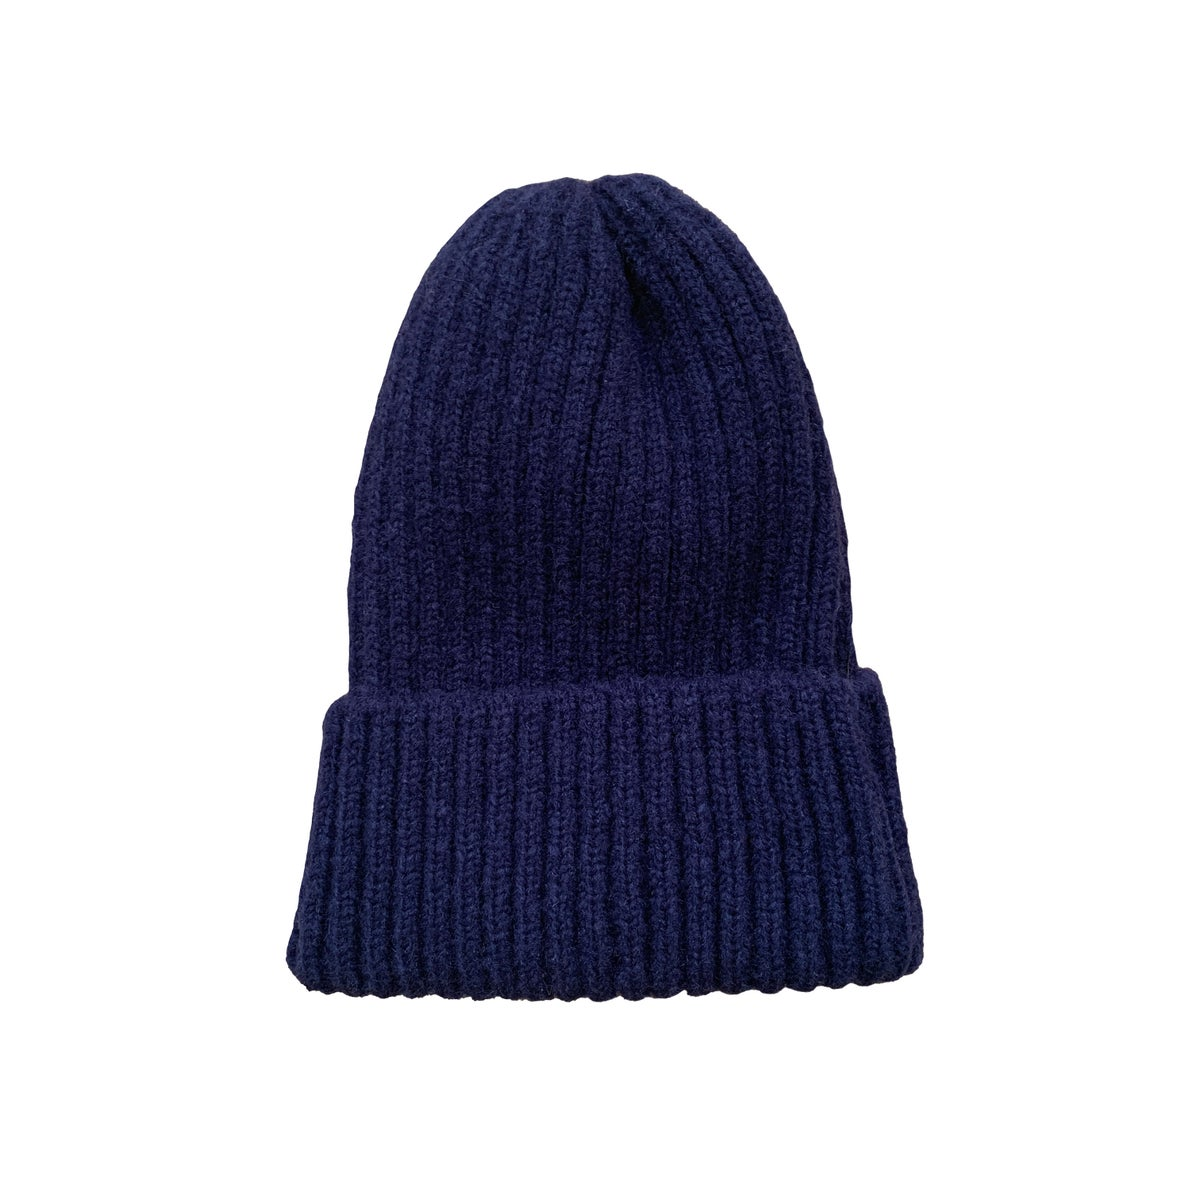 Image of Soft fisherman's style beanie/ watch cap. Navy.